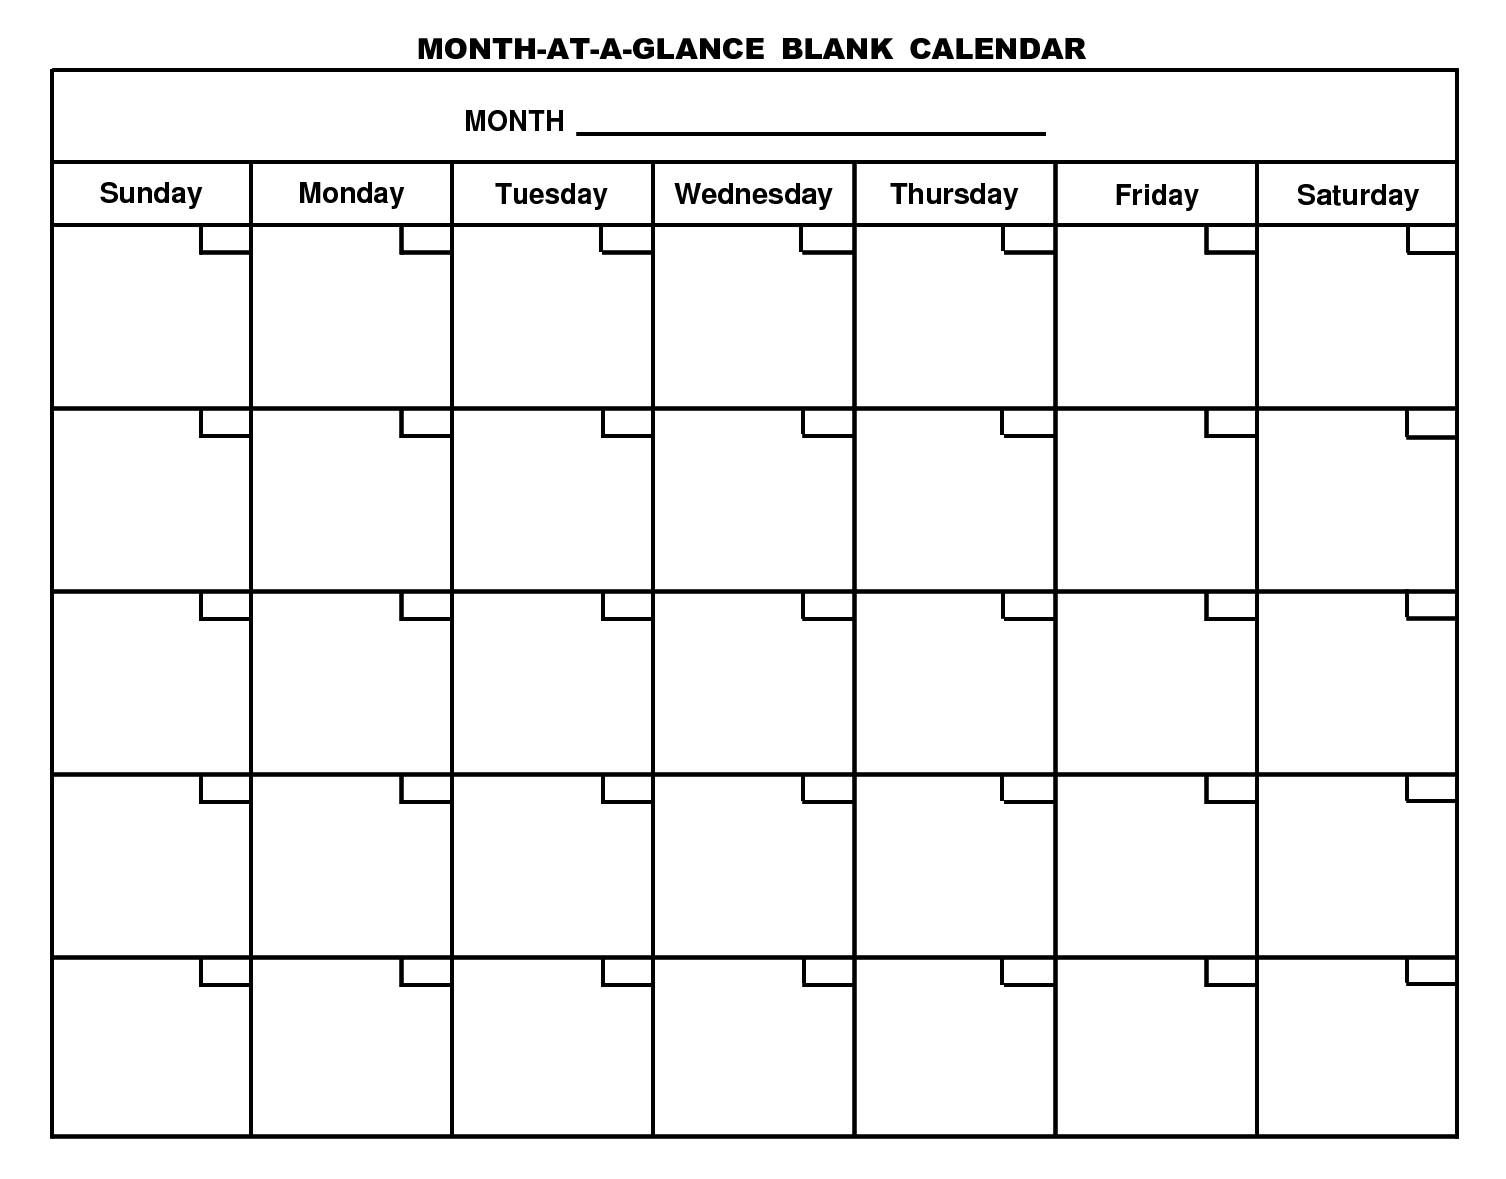 Free Printable Monthly Calendars At A Glance | Monthly